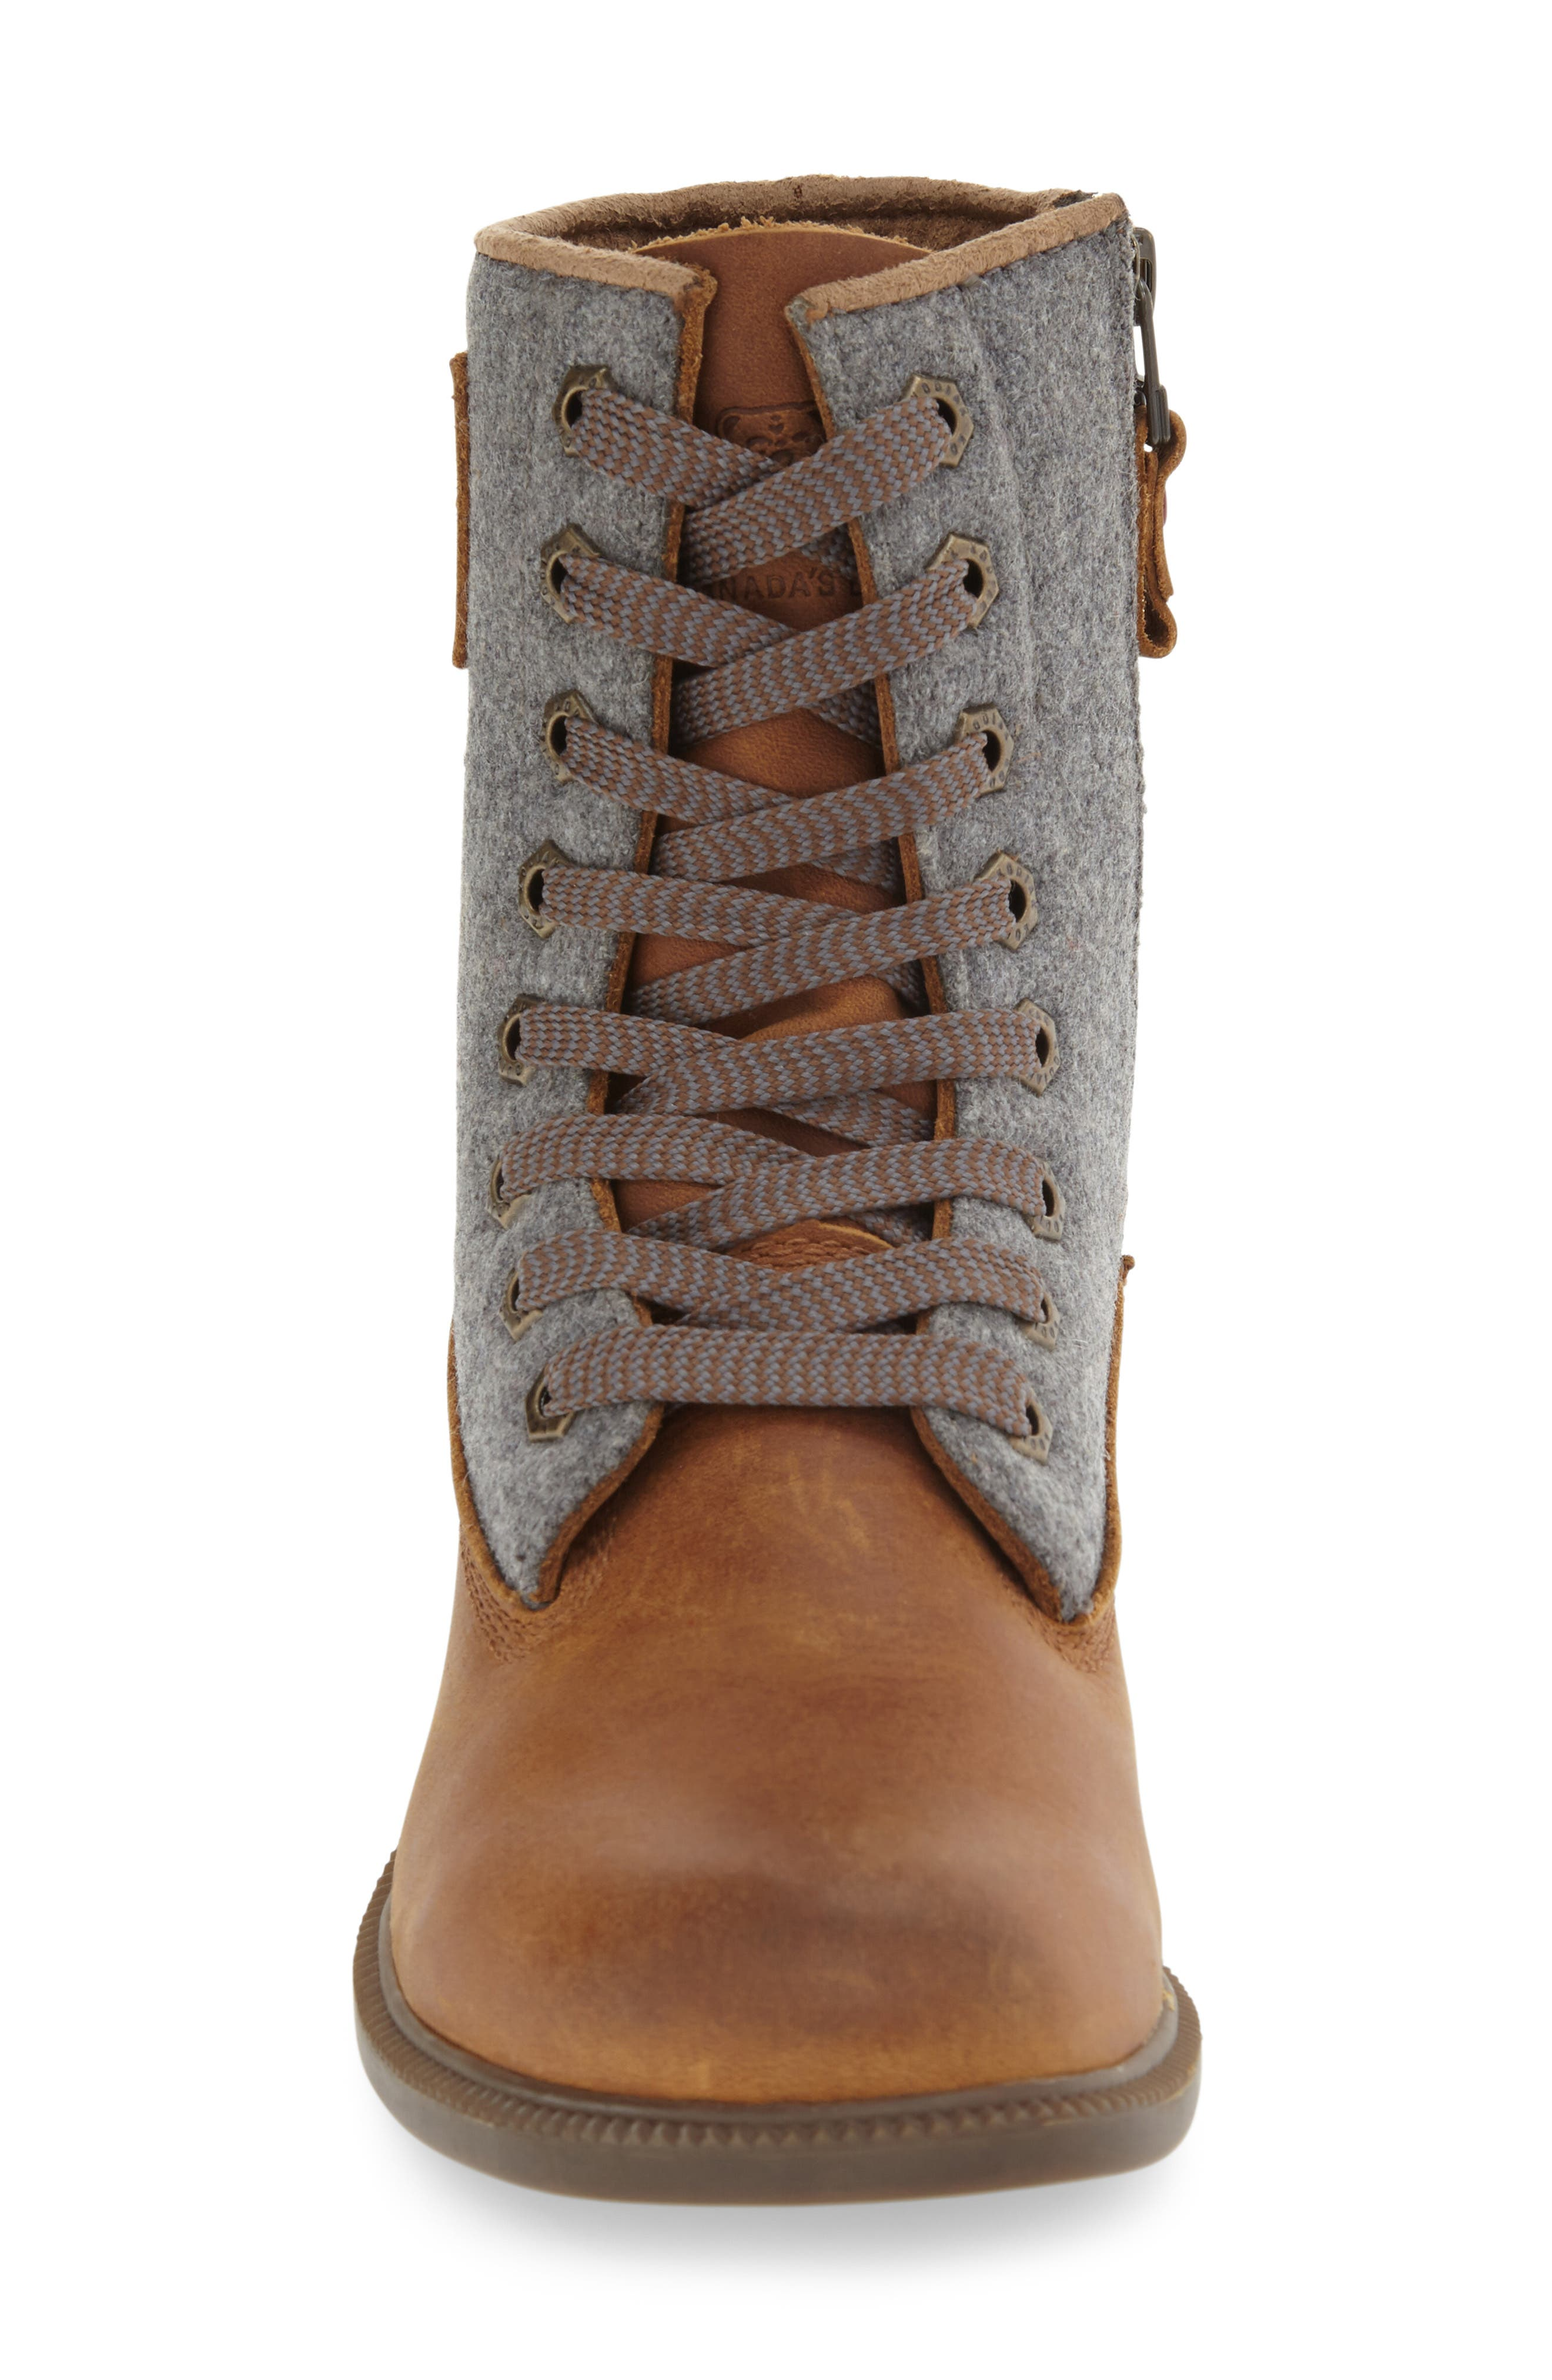 'Addison' Waterproof Insulated Zip Boot,                             Alternate thumbnail 3, color,                             240